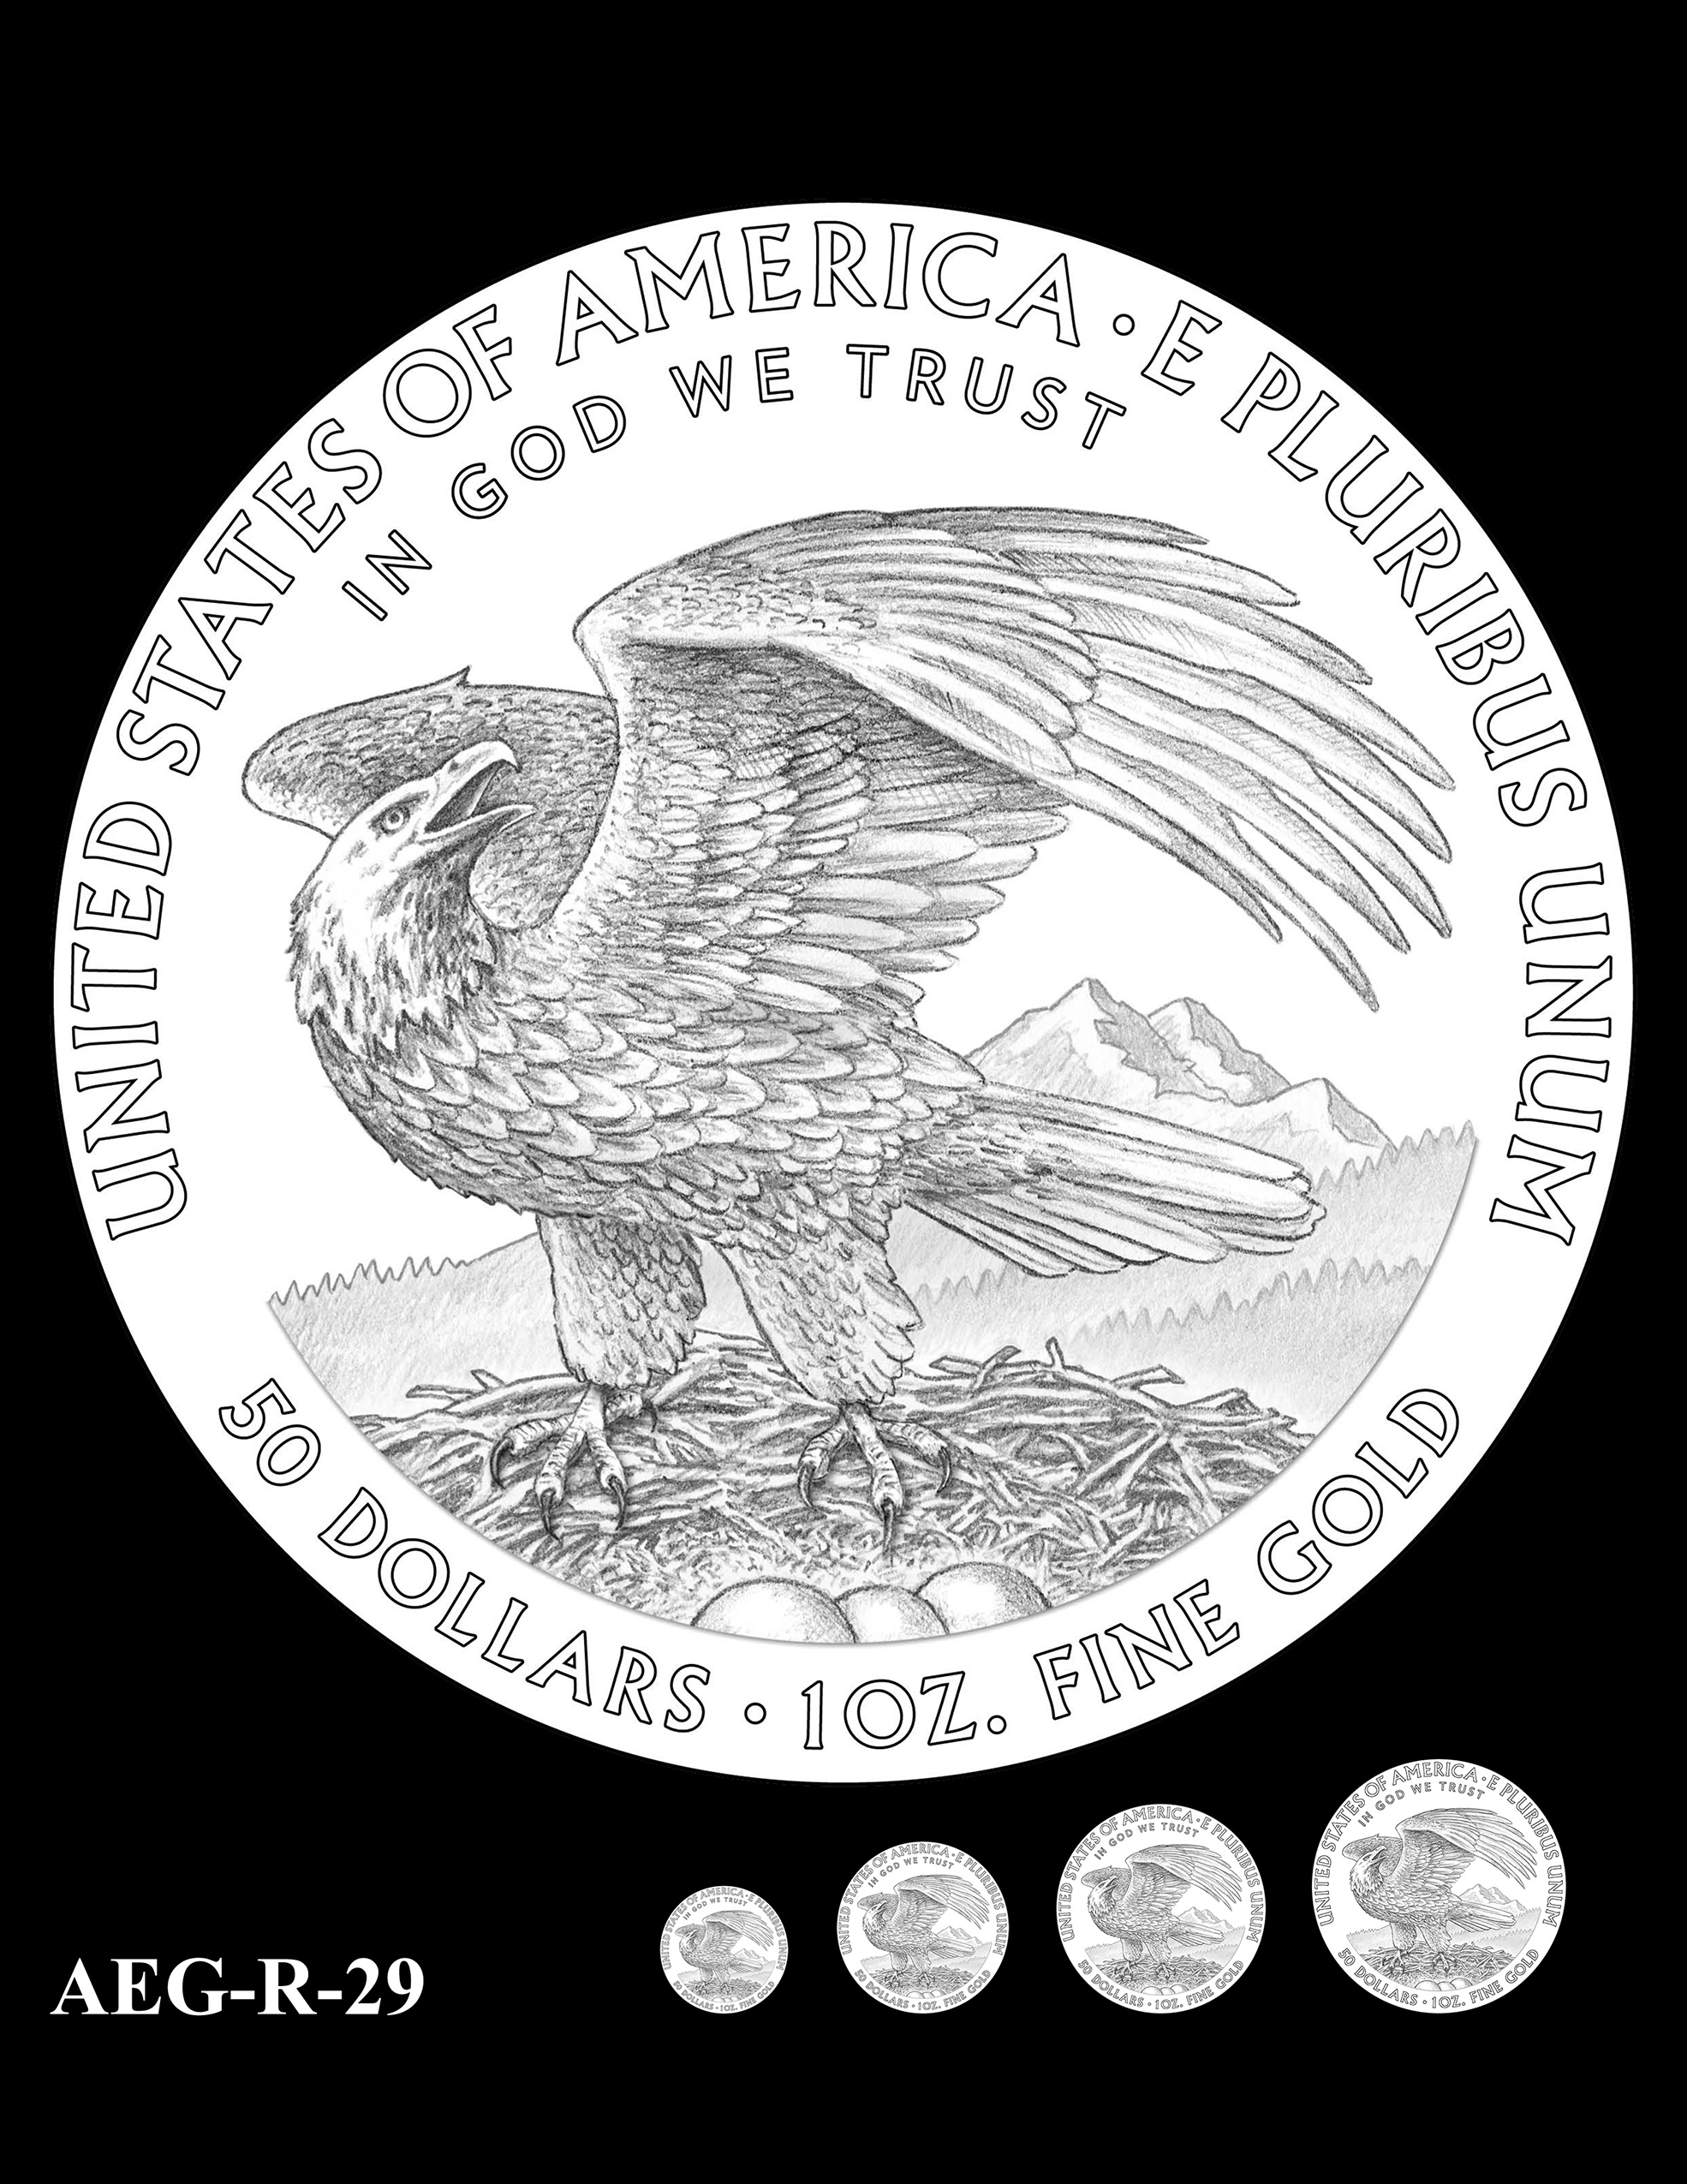 AEG-R-29 -- American Eagle Proof and Bullion Gold Coin - Reverse